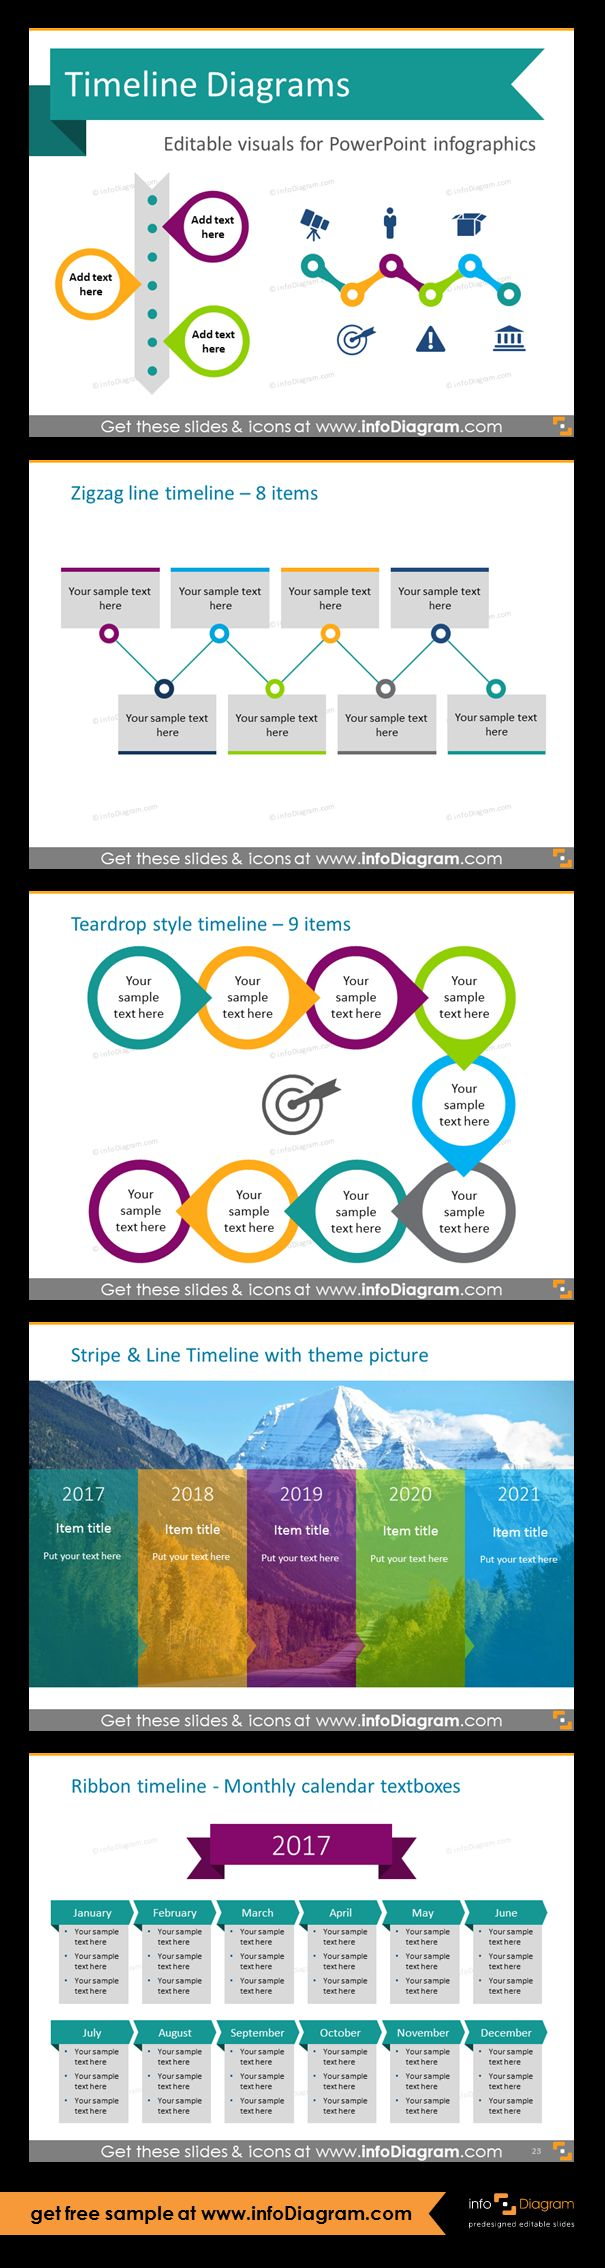 Template slides for Timeline diagrams and Time infographics. Editable PowerPoint graphics for showing history, agenda, linear process flow charts, project timelines, planning phases and roadmaps by modern infographics. Apply zigzag-shaped timeline if you want to present more than 5 key activities and illustrate them with icons. Teardrop, zigzag, stripe and line, ribbon style timelines. Make a strongly visual impact at the same time being expressive and compact within your slides.